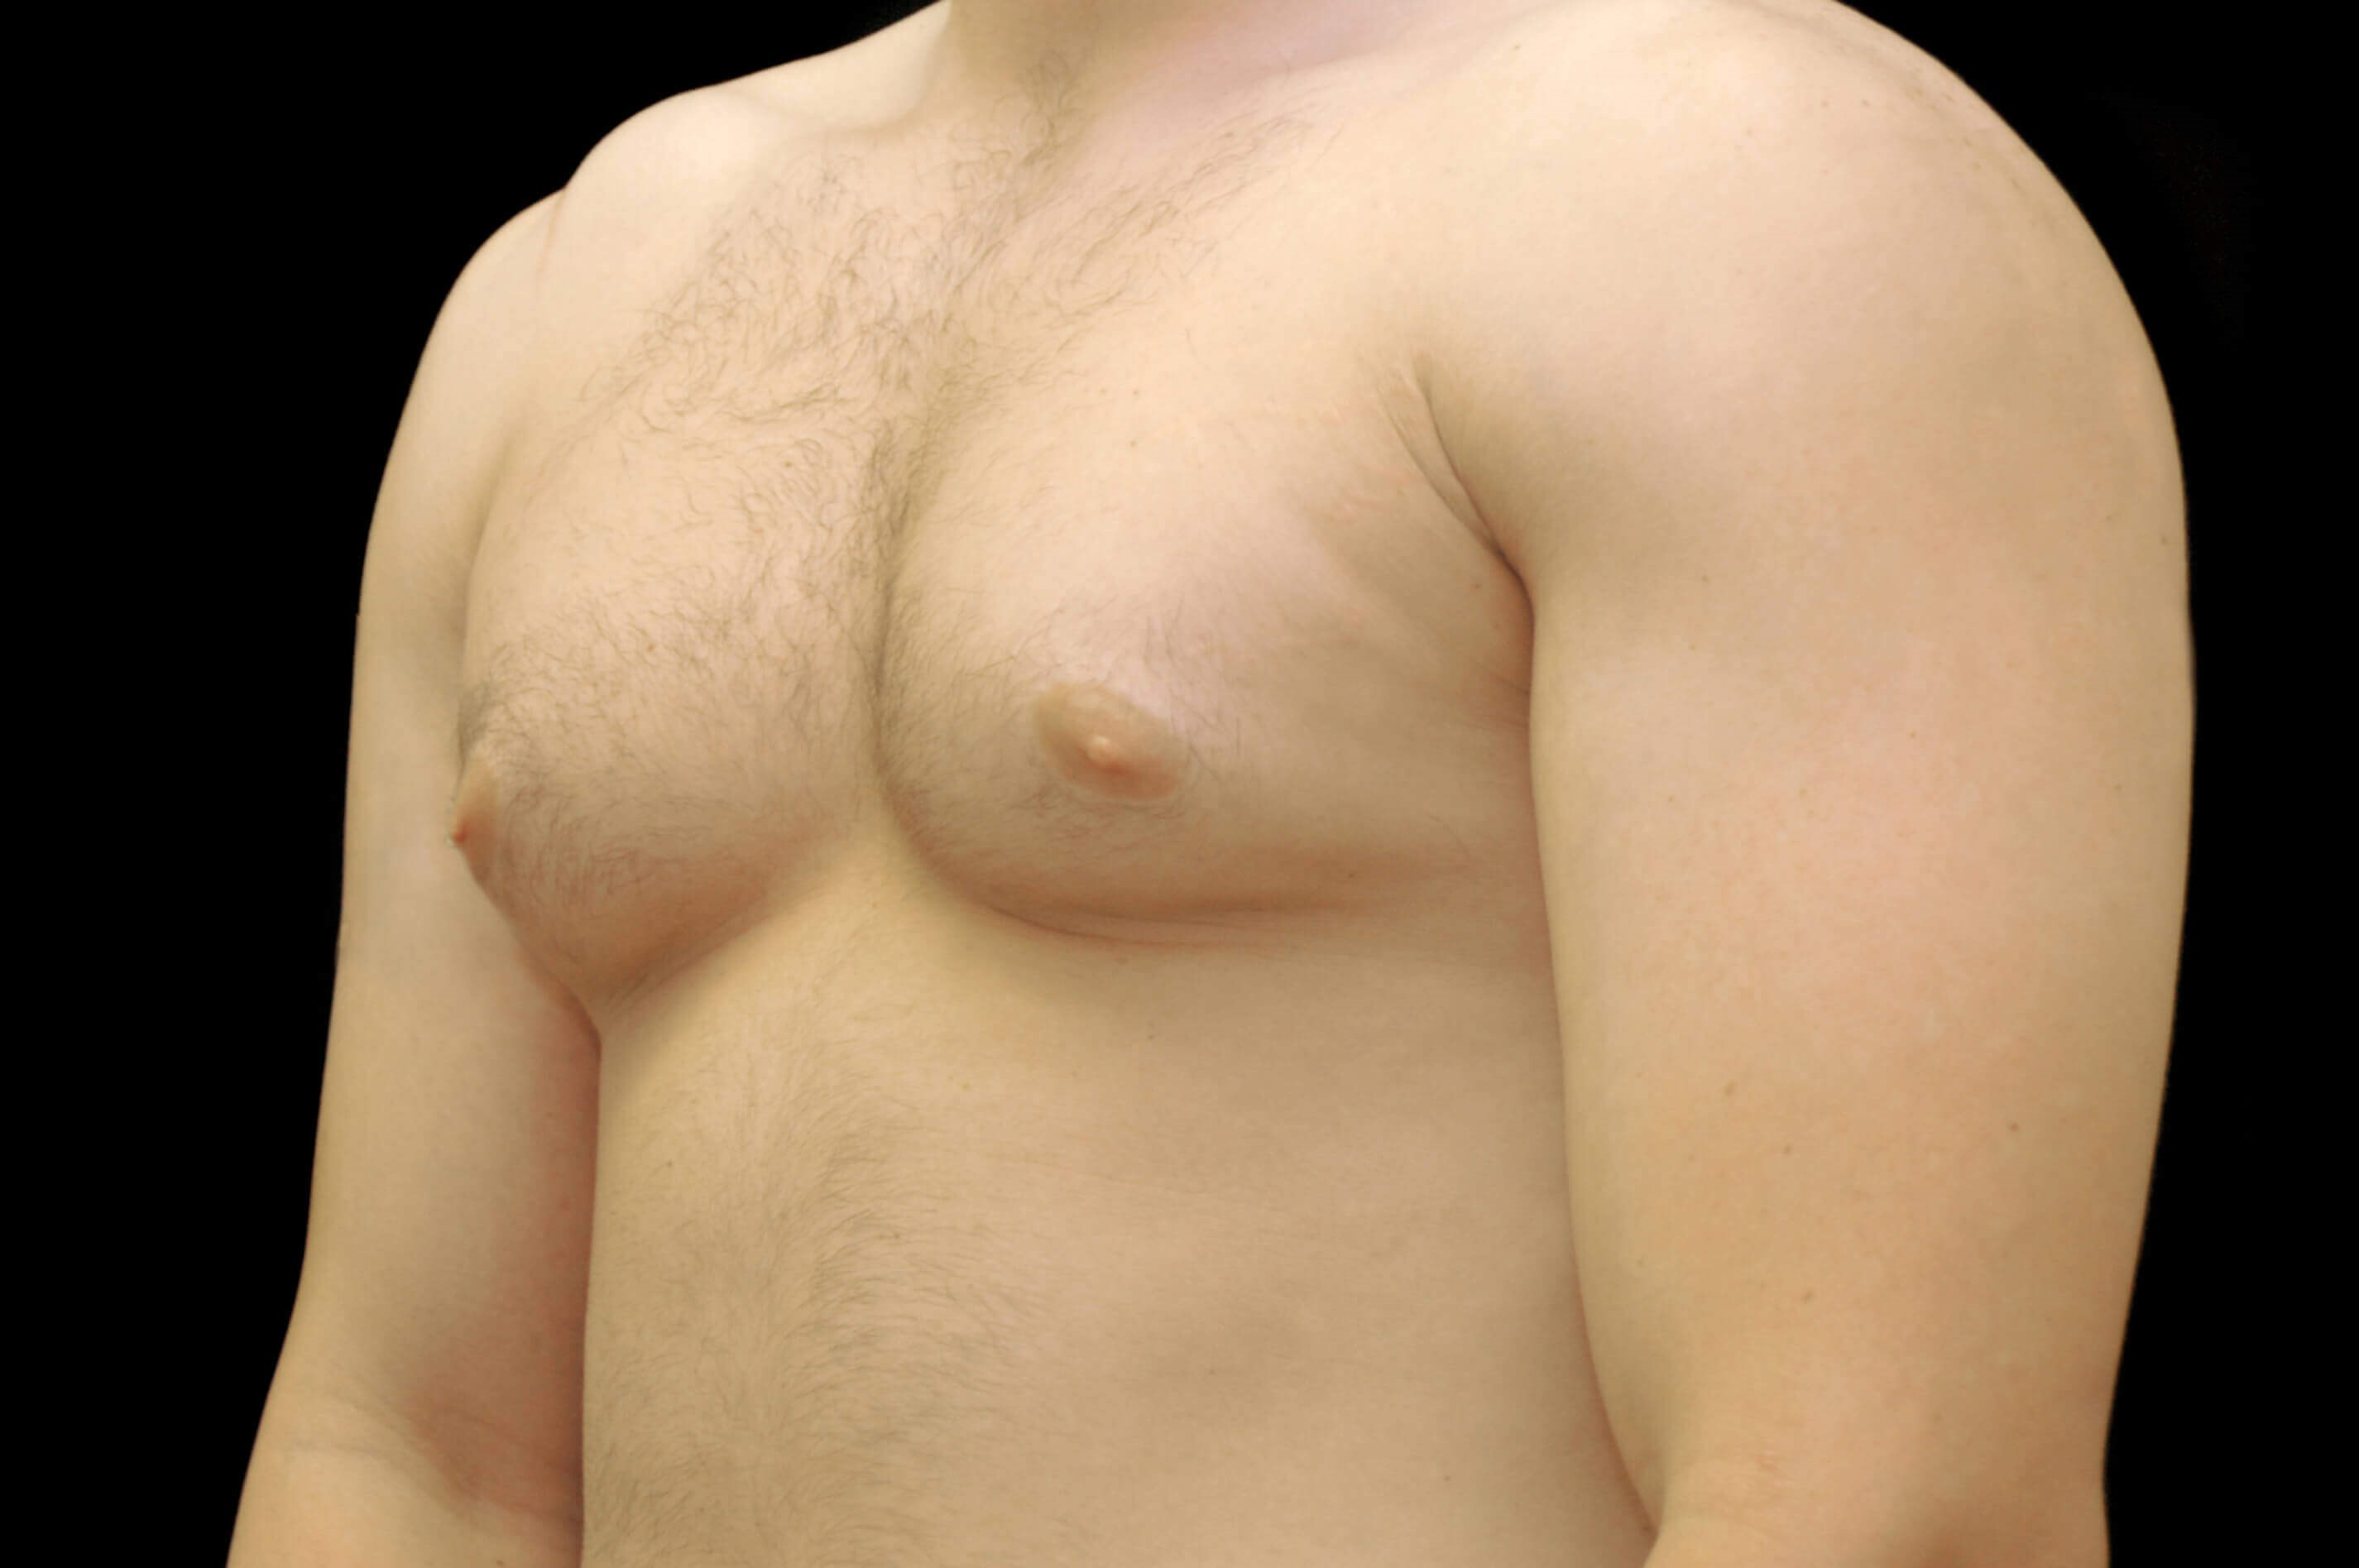 Male Gynecomastia Reduction Before Chest Liposuction